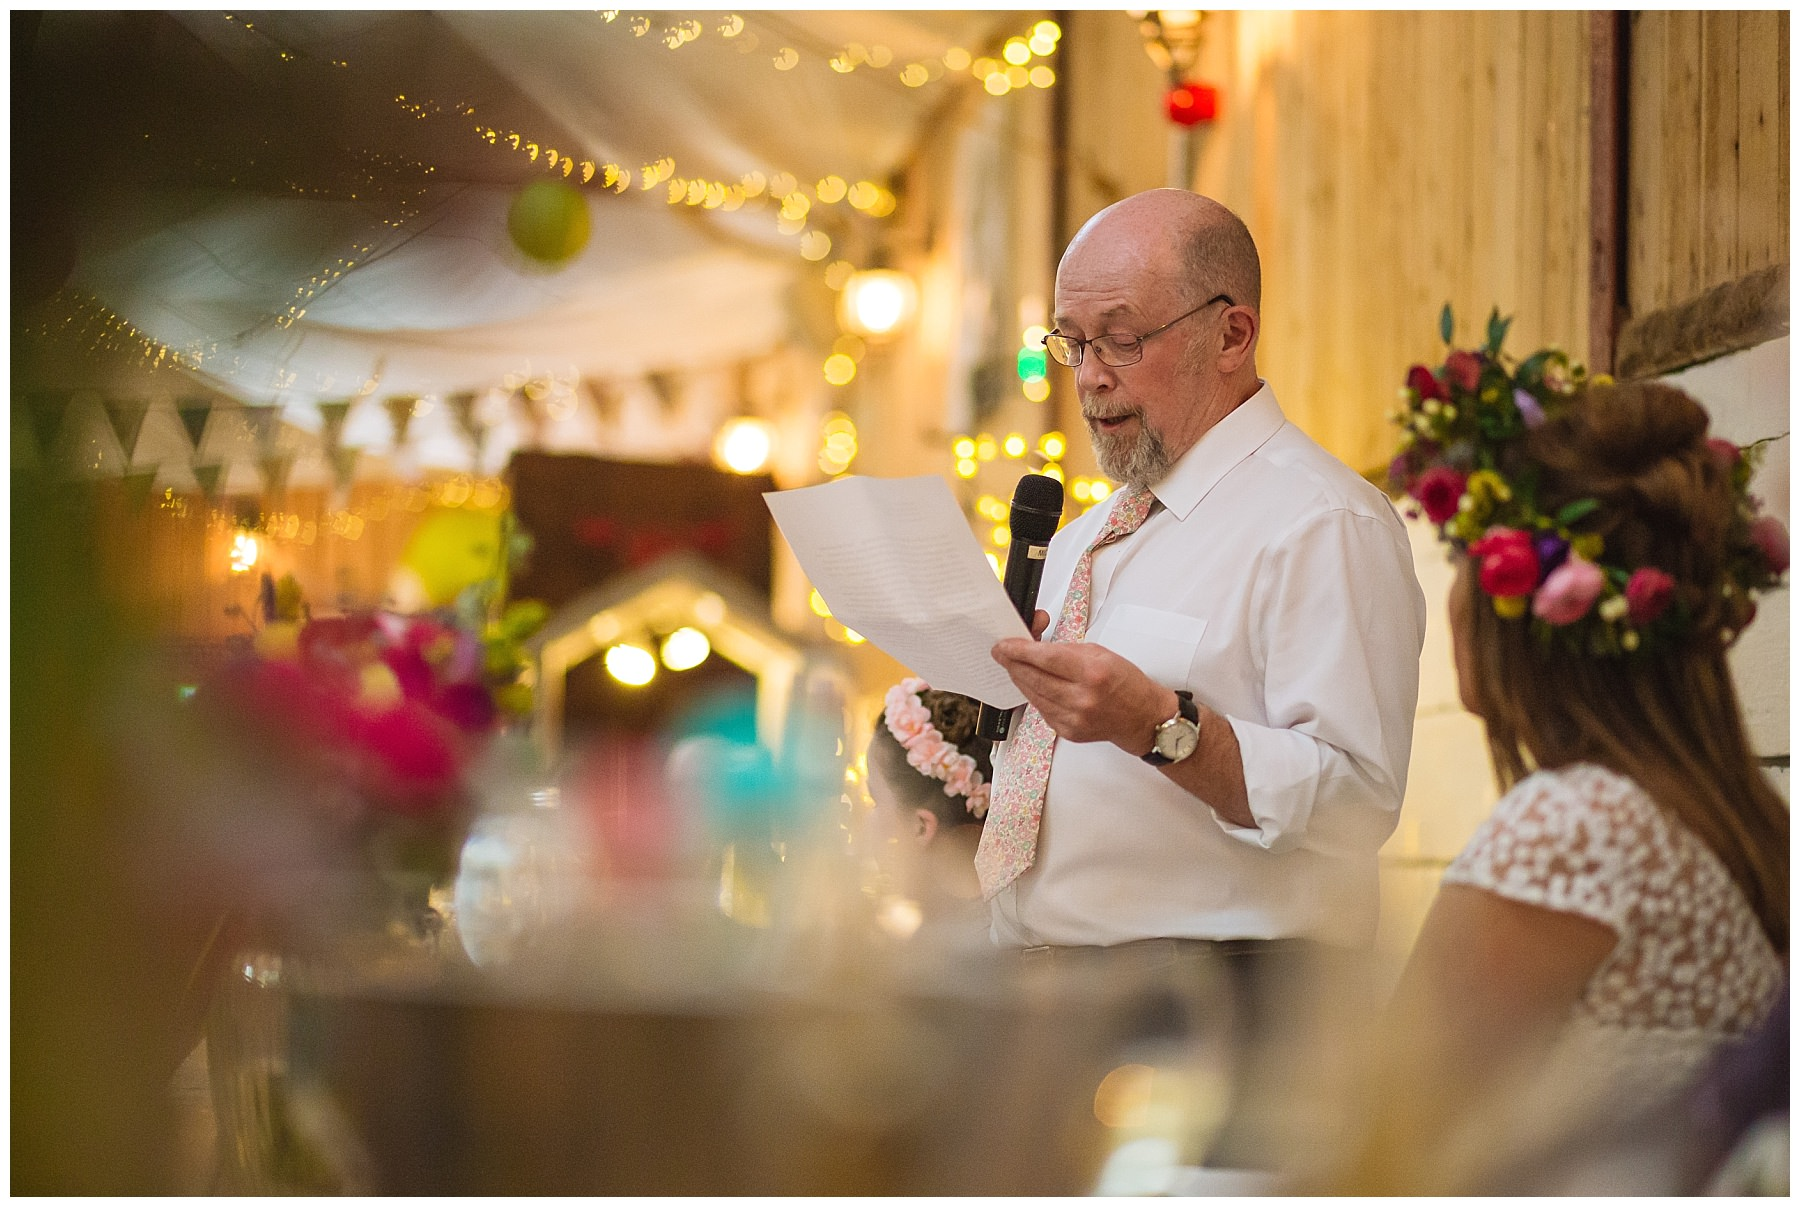 Father of the brides speech at wellbeing farm wedding in bolton